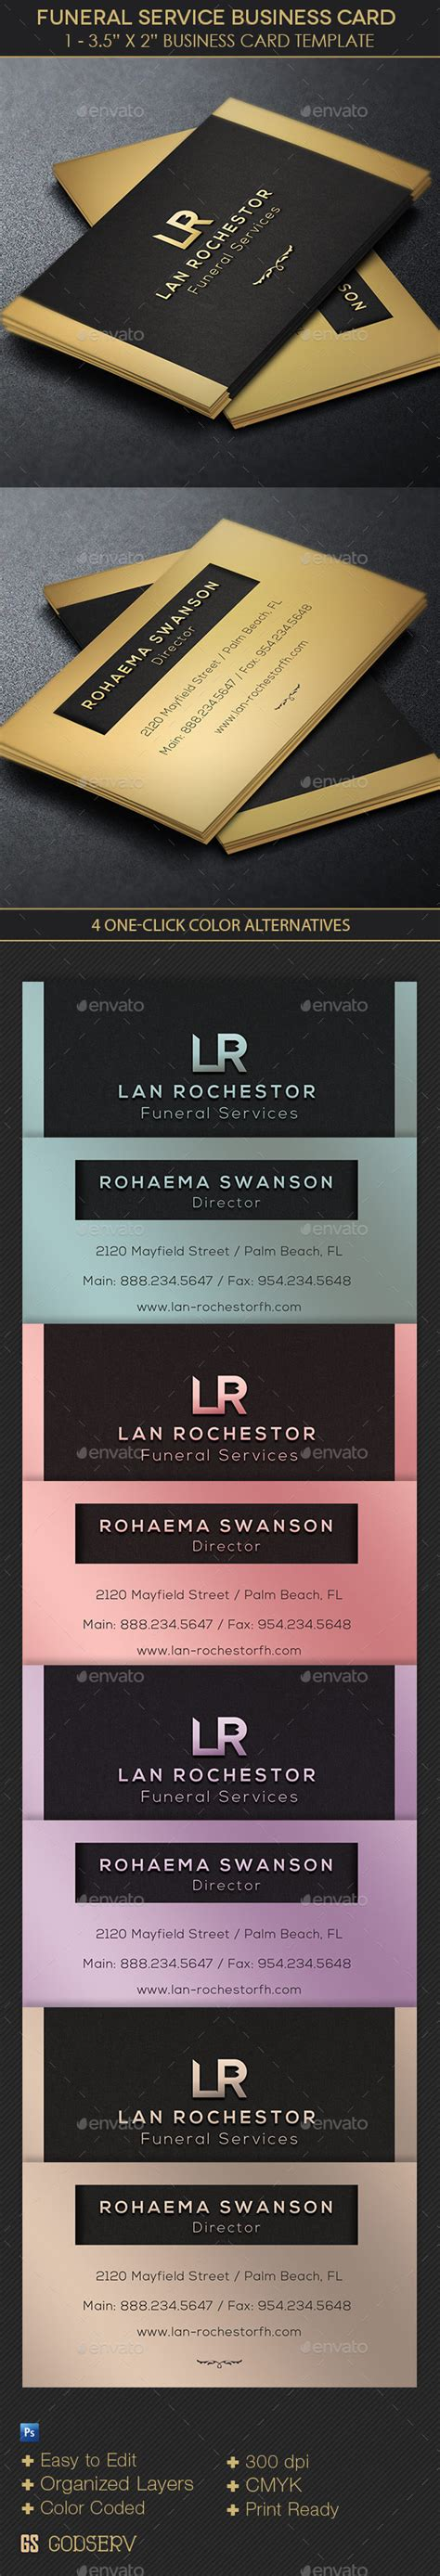 funeral director business card template by godserv